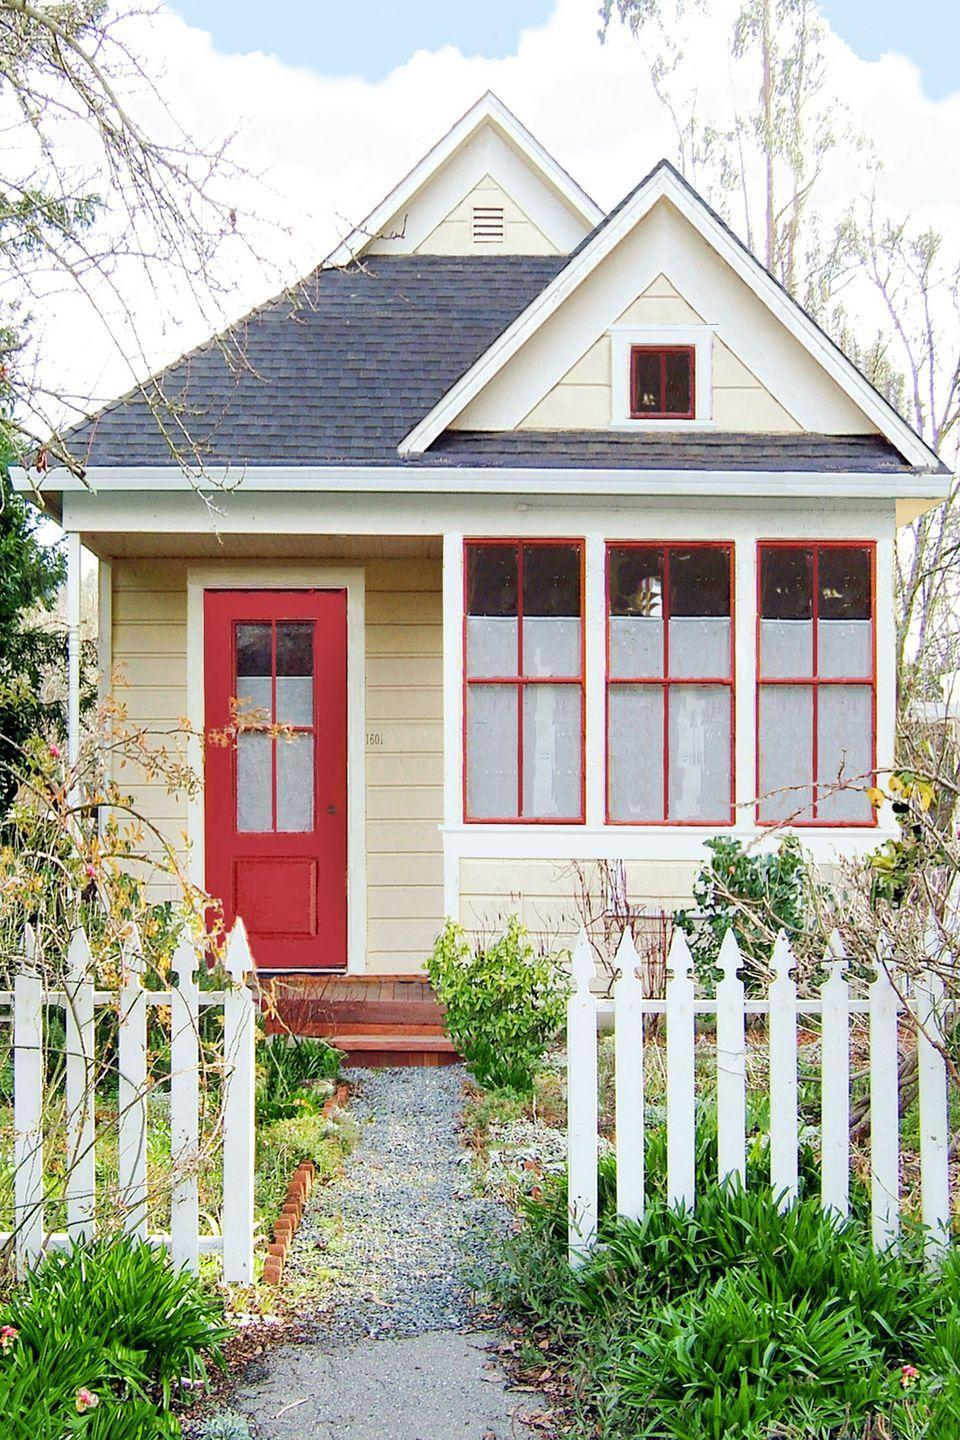 """<p>From $62,950<br></p><p>One of the first tiny house manufacturers, <a href=""""http://www.tumbleweedhouses.com/"""" rel=""""nofollow noopener"""" target=""""_blank"""" data-ylk=""""slk:Tumbleweed Tiny House Company"""" class=""""link rapid-noclick-resp"""">Tumbleweed Tiny House Company</a> now offers travel trailers and prefab cottages starting at 117 square feet. The model pictured here features a bump-out in the front that can be used as a sitting or sleeping area.</p><p><a class=""""link rapid-noclick-resp"""" href=""""https://go.redirectingat.com?id=74968X1596630&url=https%3A%2F%2Fwww.tumbleweedhouses.com%2Fpages%2Fcottages%2F&sref=https%3A%2F%2Fwww.countryliving.com%2Fhome-design%2Fg1887%2Ftiny-house%2F"""" rel=""""nofollow noopener"""" target=""""_blank"""" data-ylk=""""slk:SHOP NOW"""">SHOP NOW</a></p>"""